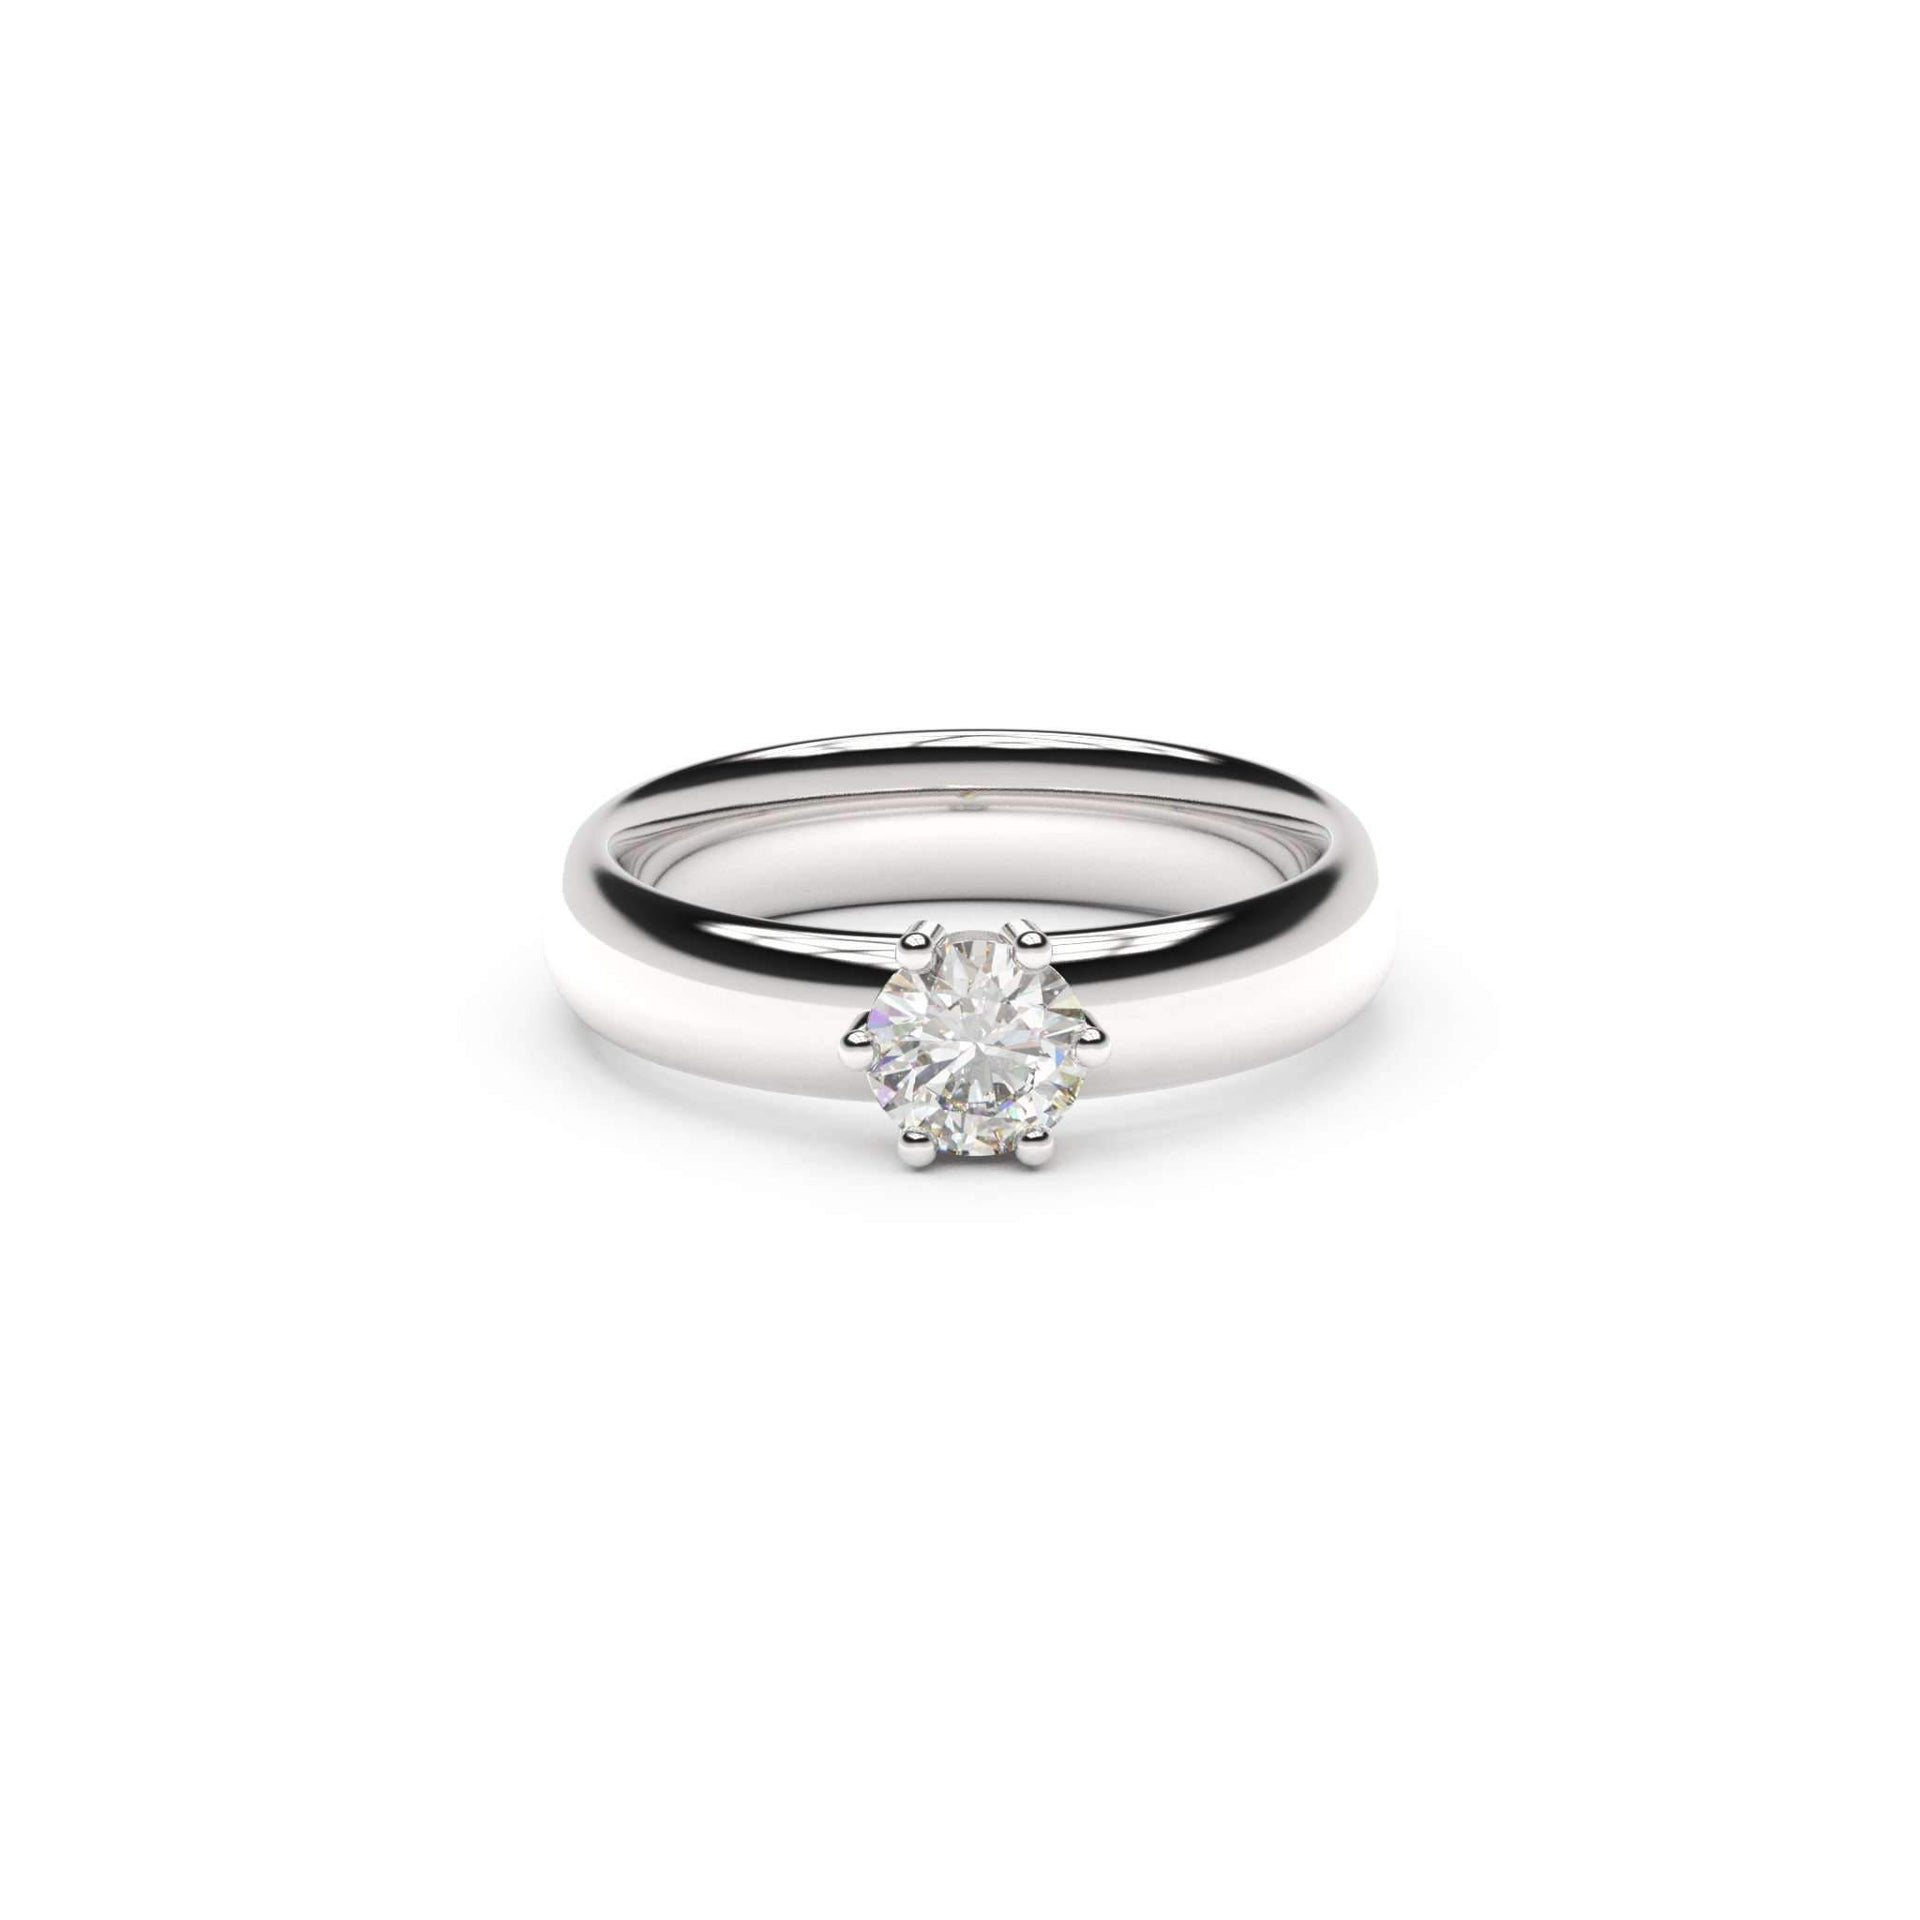 5mm Stone Classic Elvish Engagement Ring, White Gold, Platinum & Palladium, Unengraved   - Jens Hansen